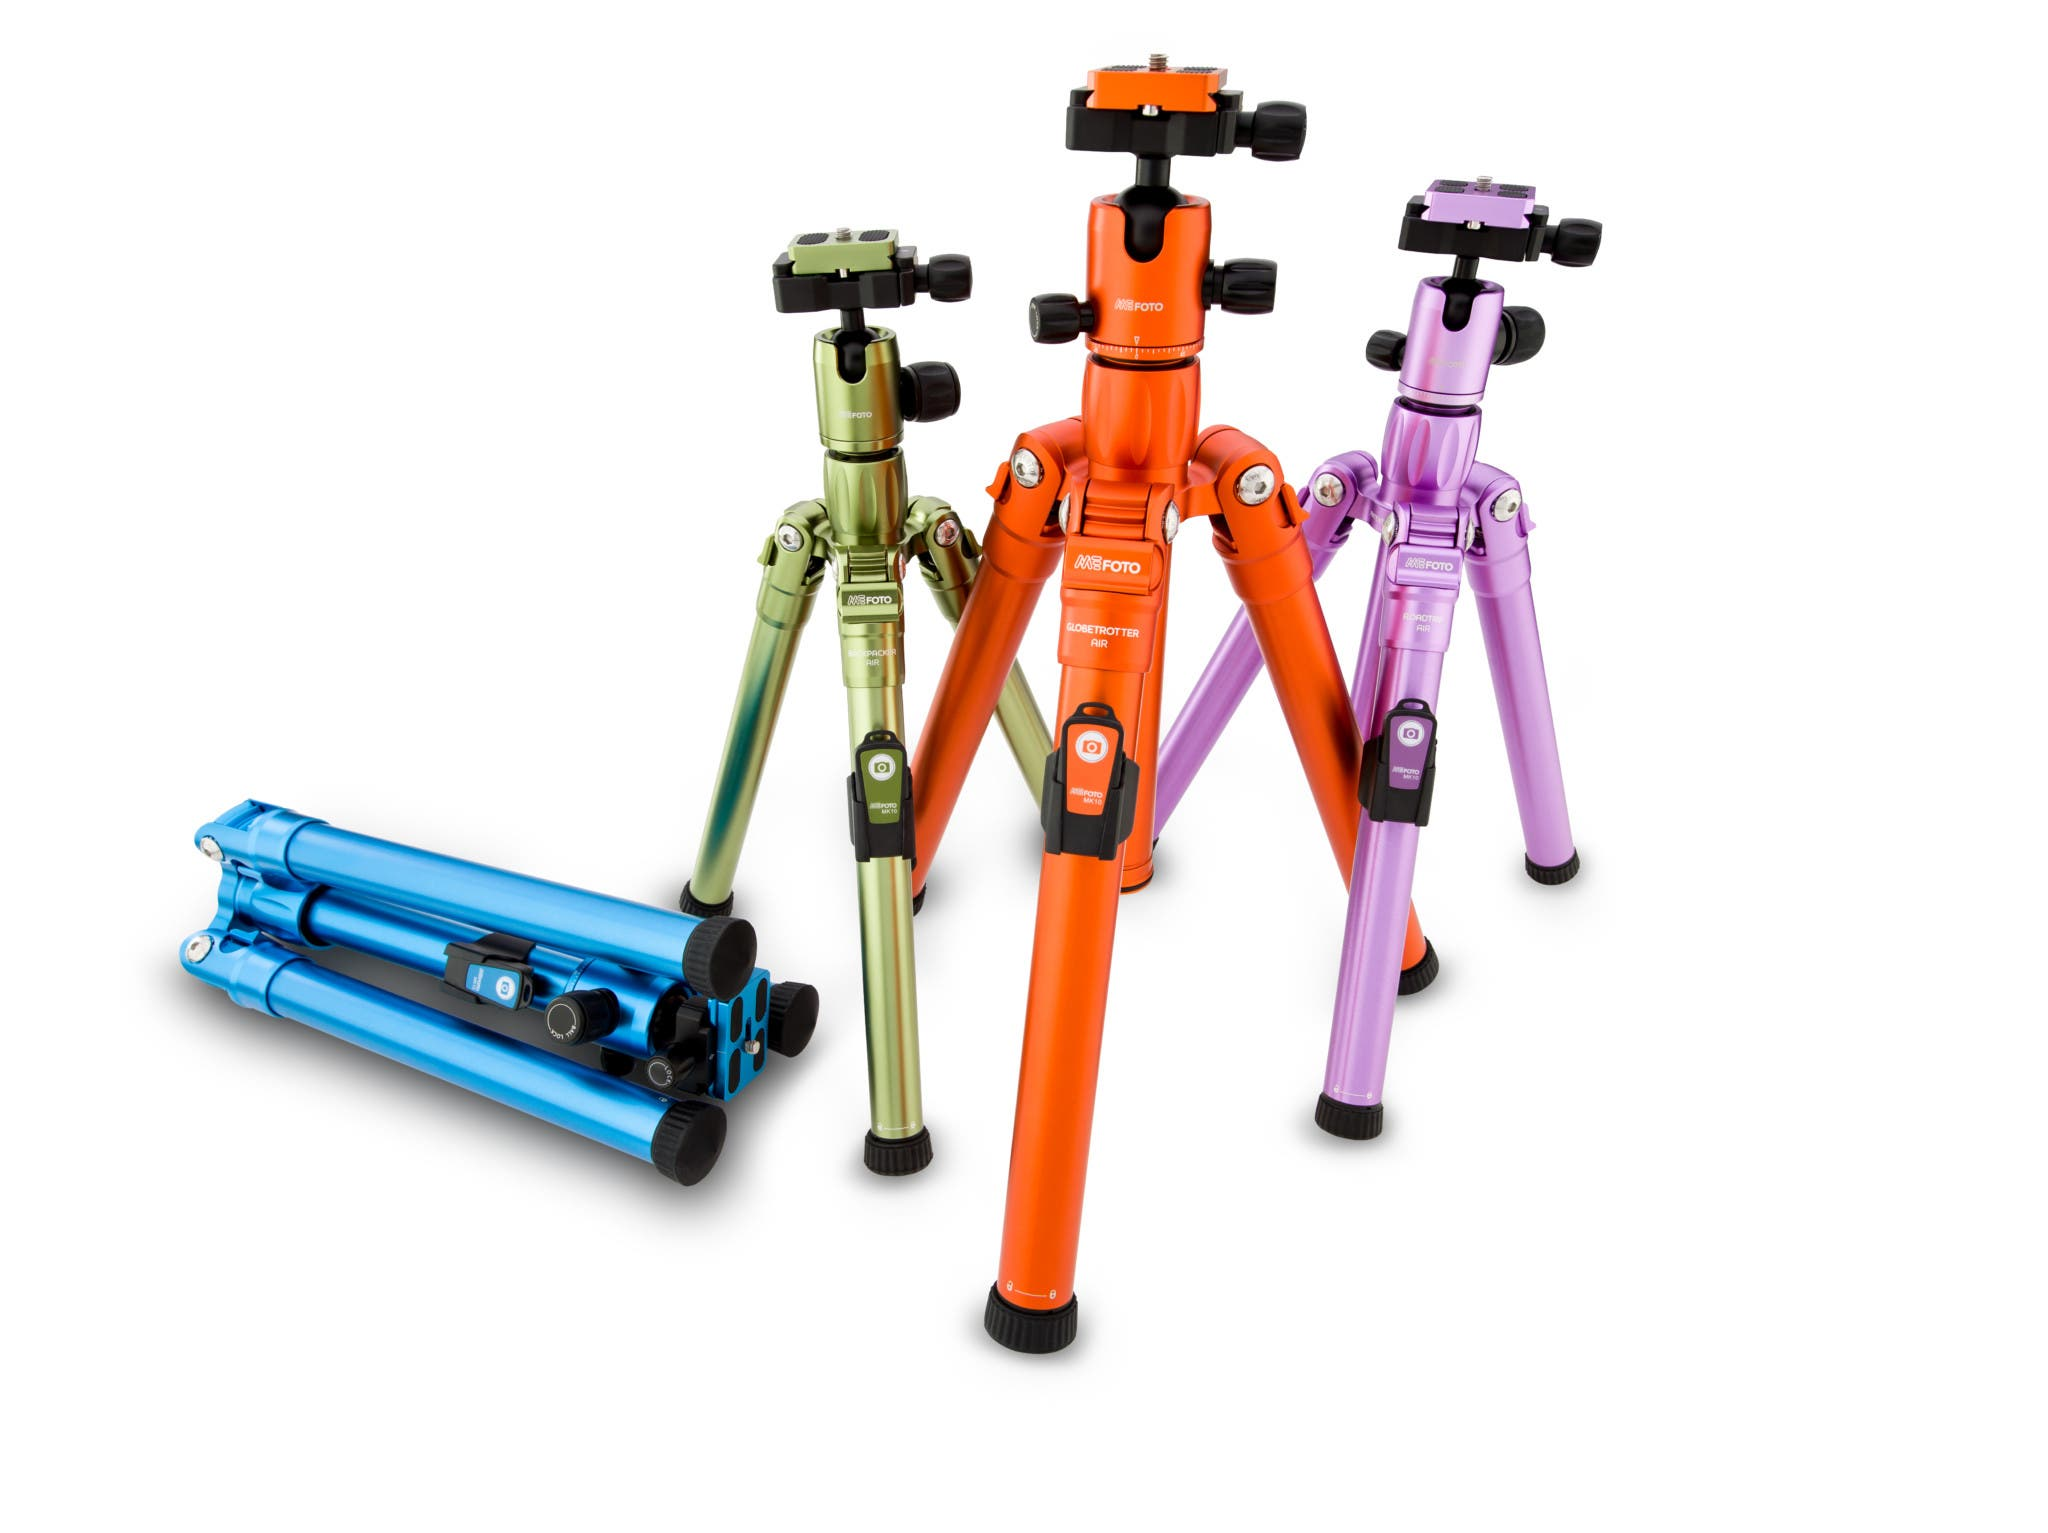 New MeFOTO Air Series of Tripods and Monopods are Lighter, Faster and Easier-to-Use